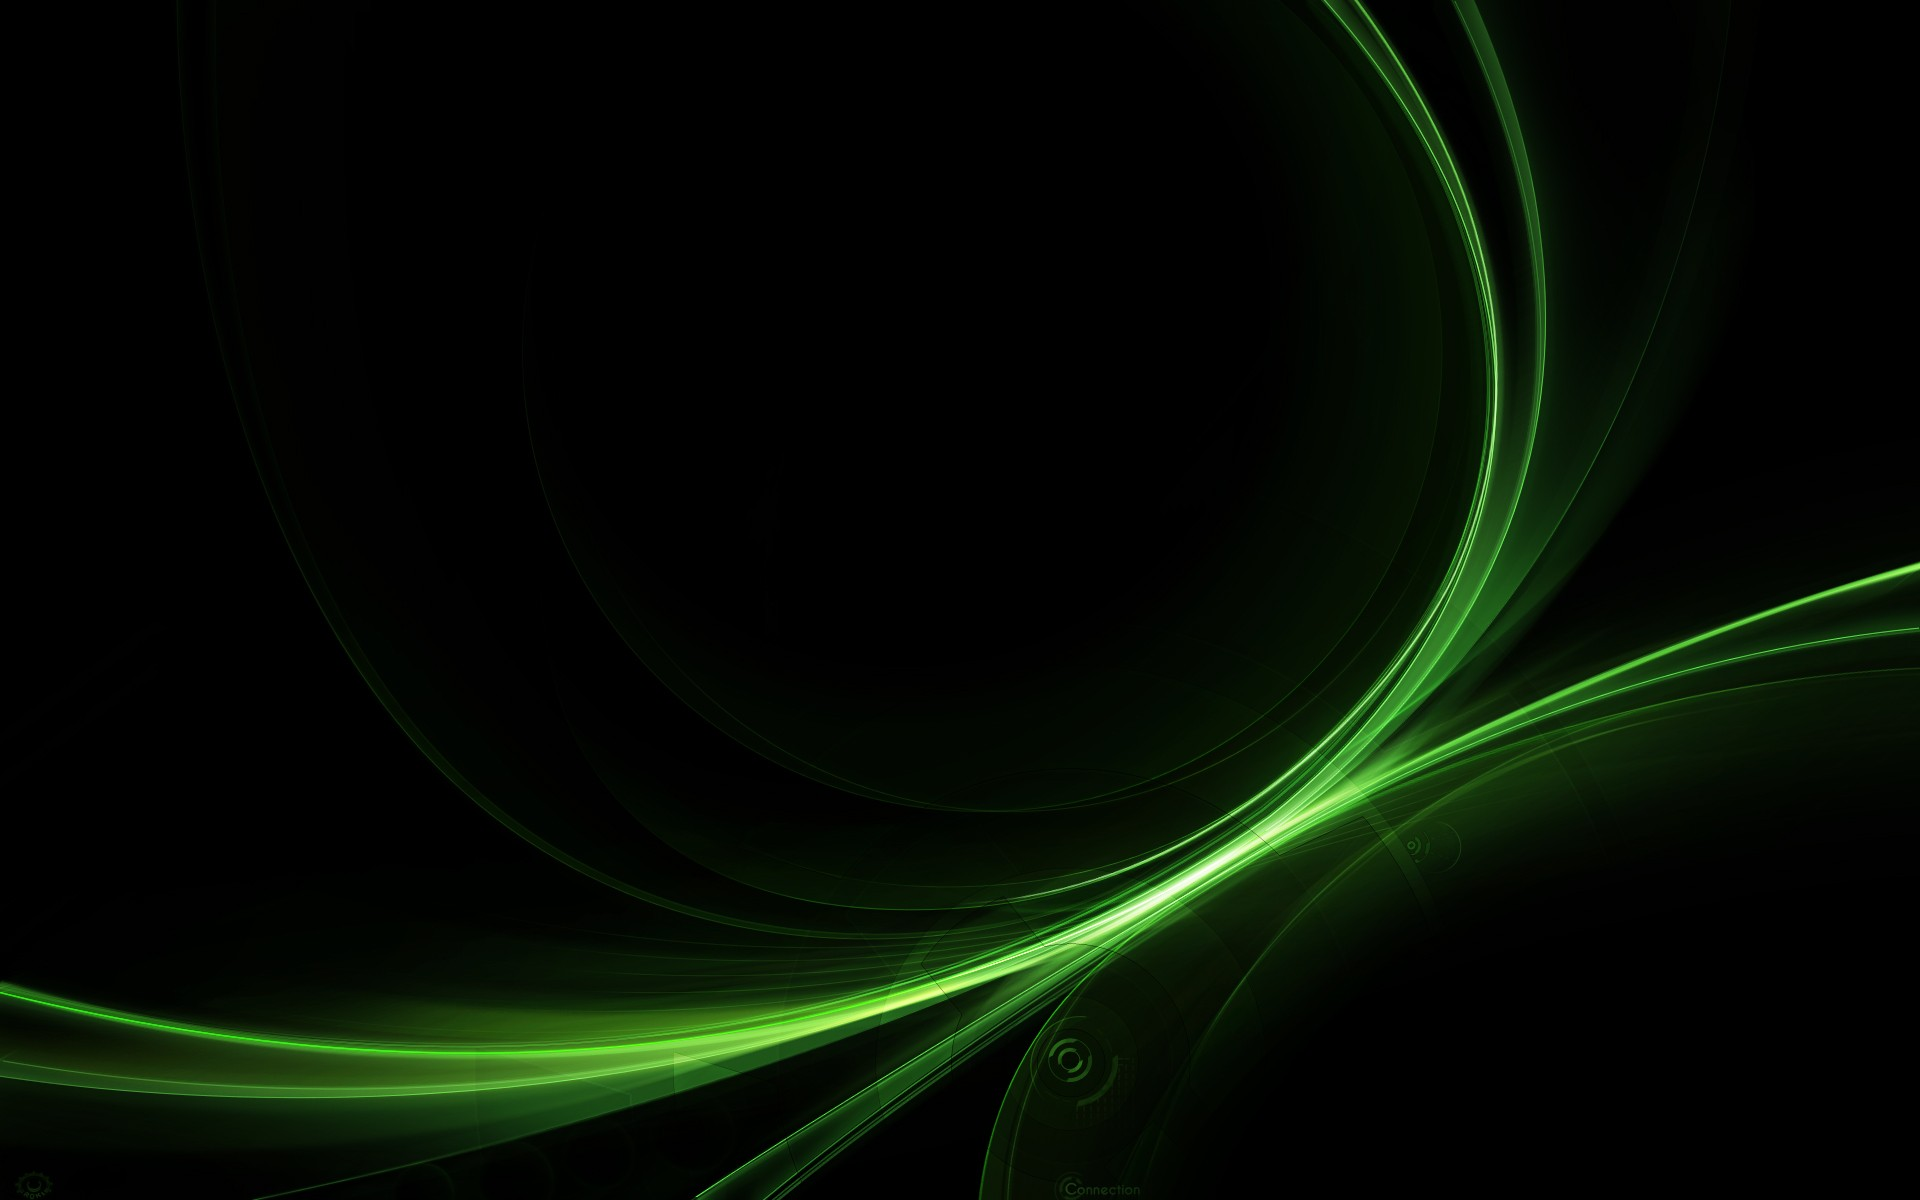 Wallpaper Black Green